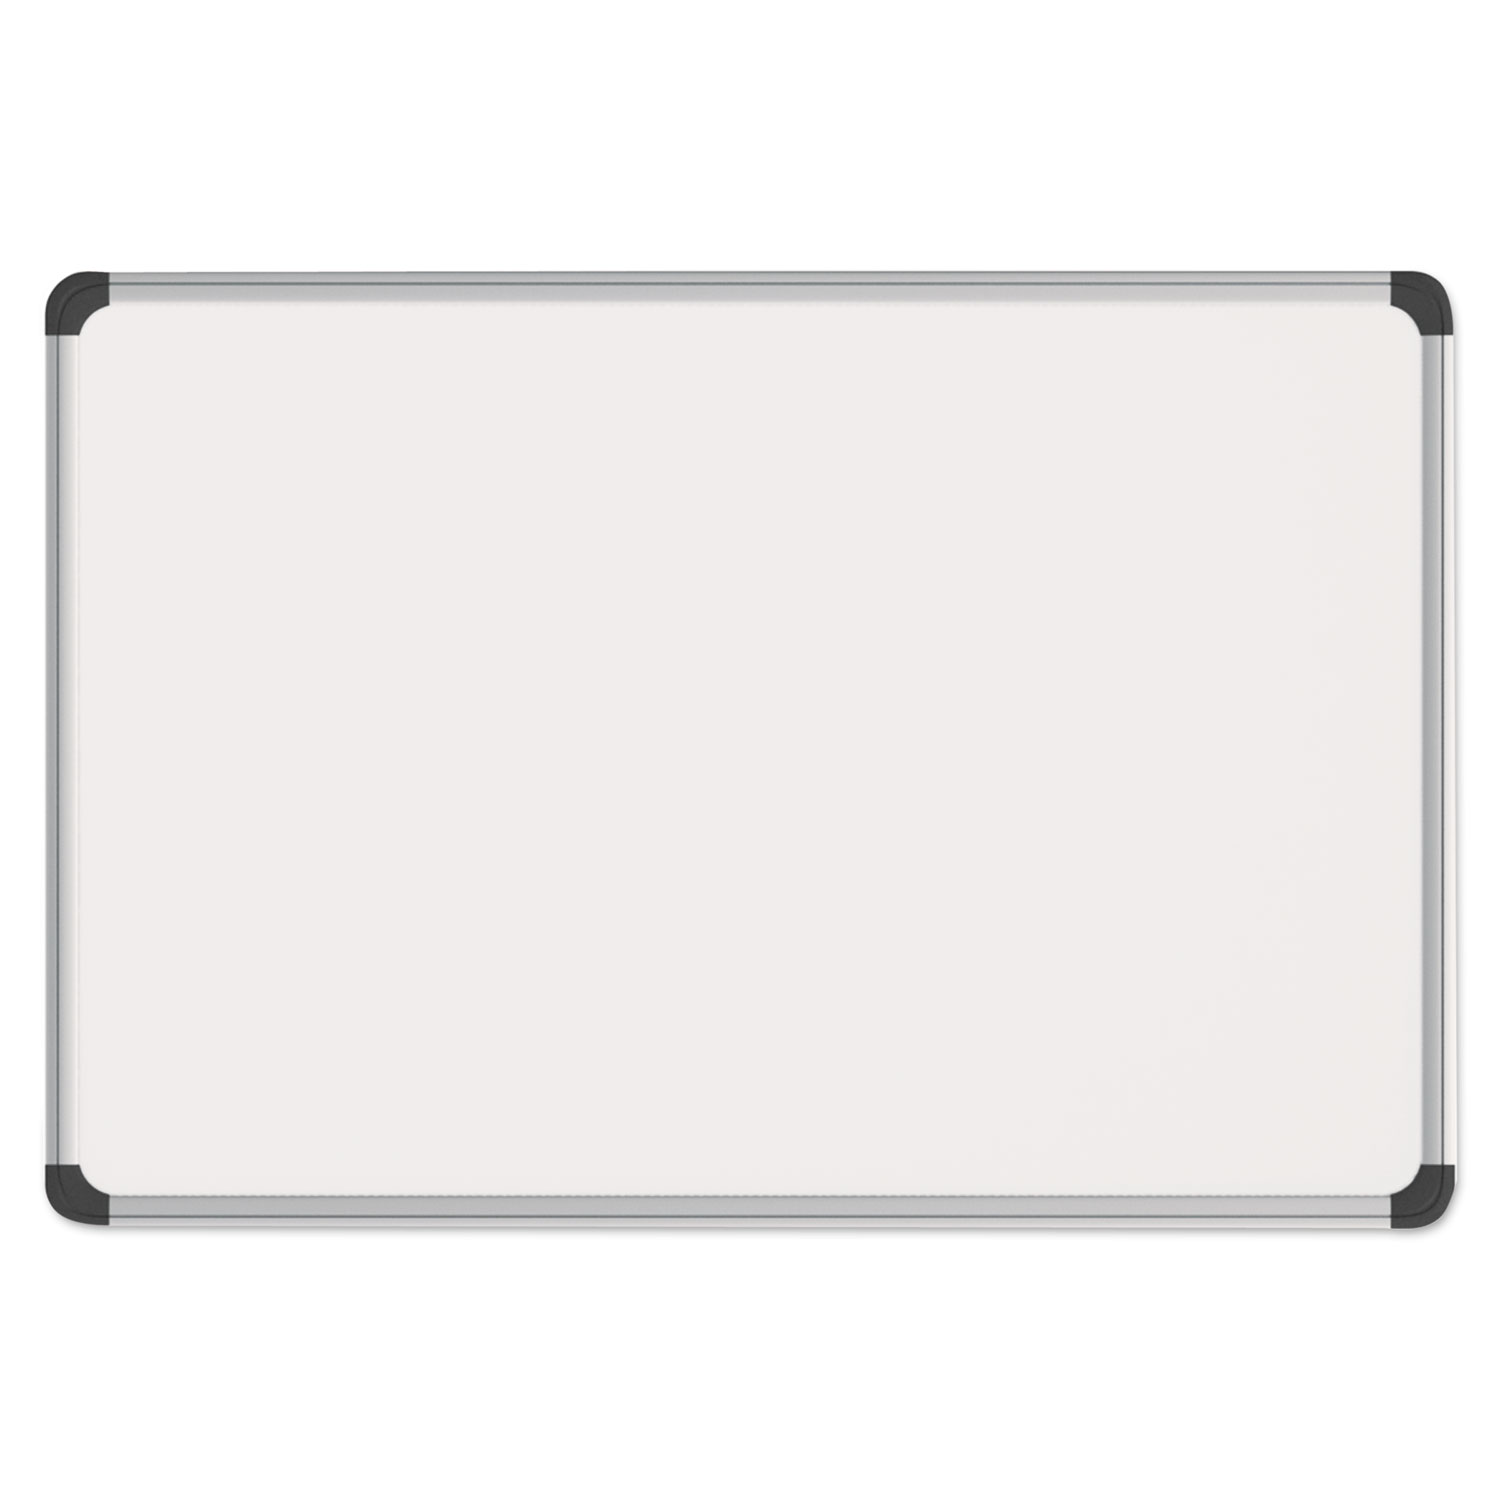 Metal Dry Erase Board : Magnetic steel dry erase board white aluminum